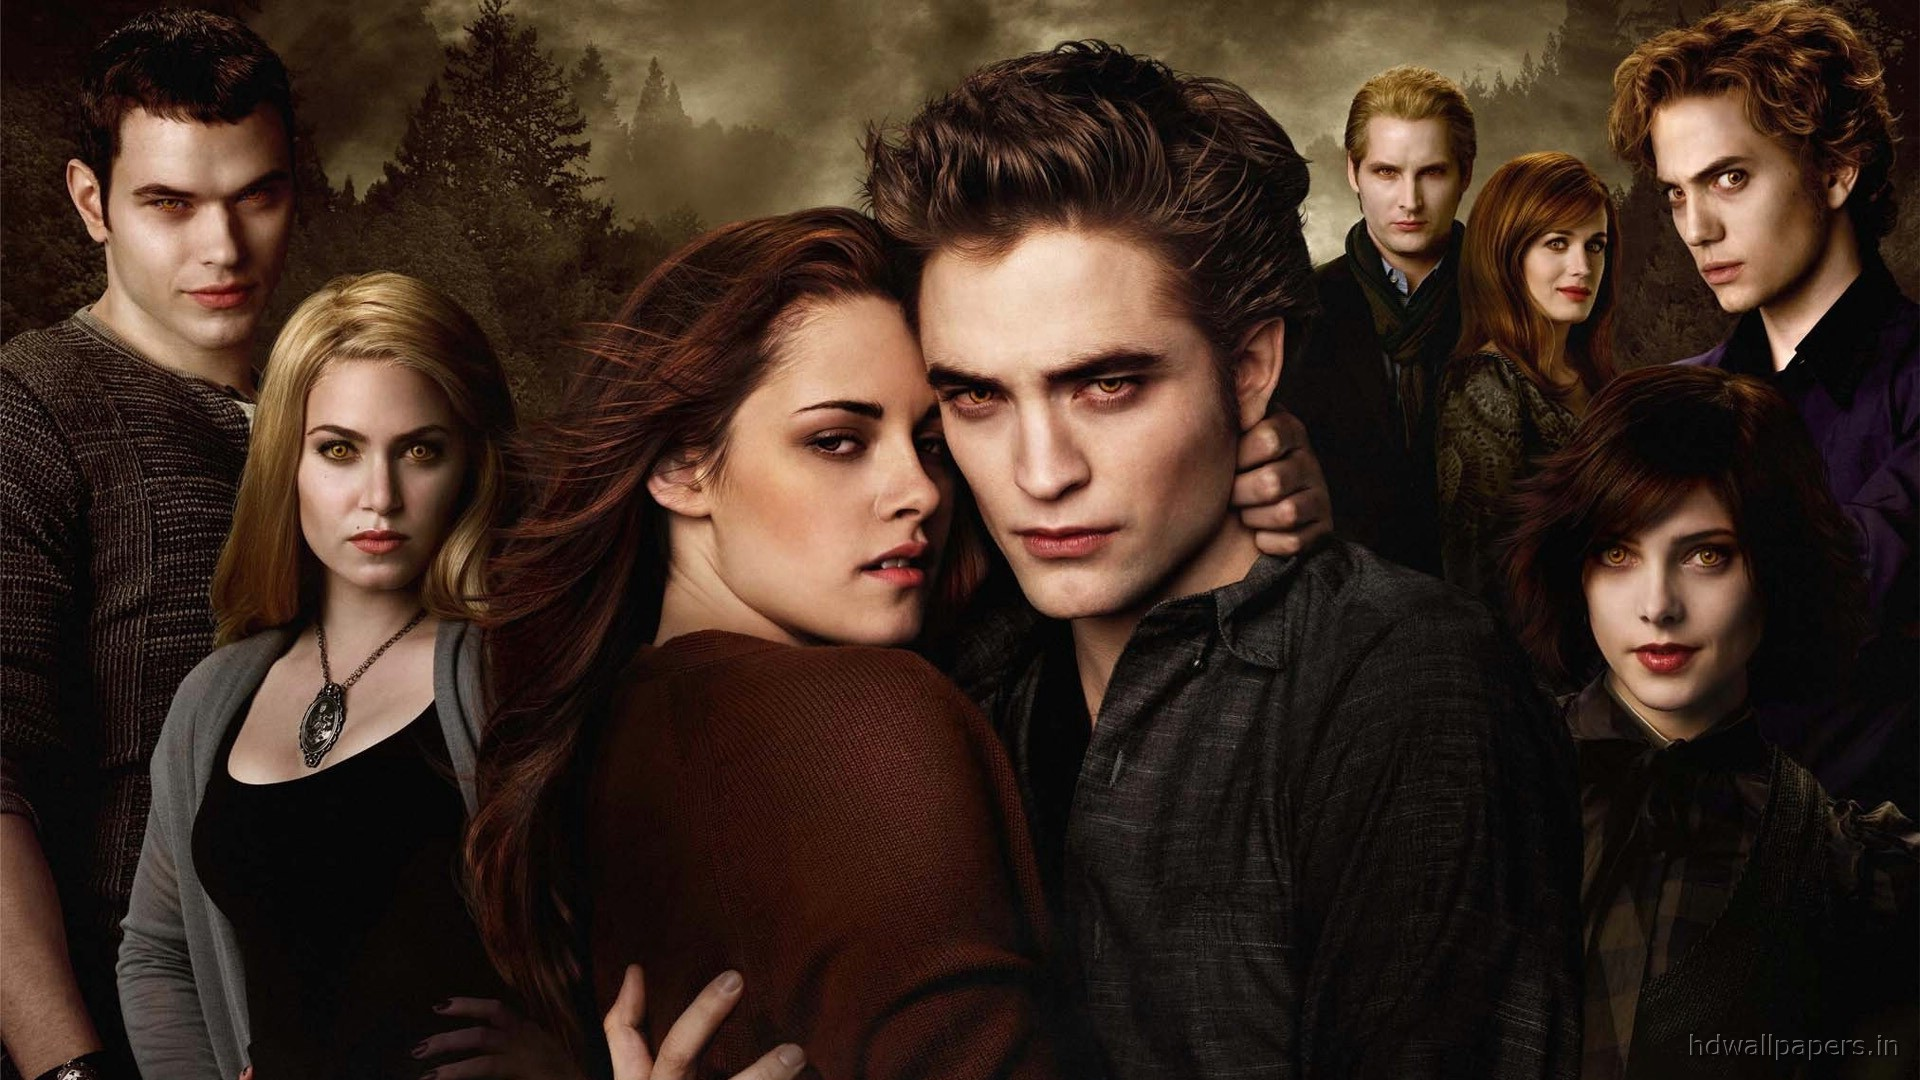 HQ Twilight Wallpapers | File 411.76Kb